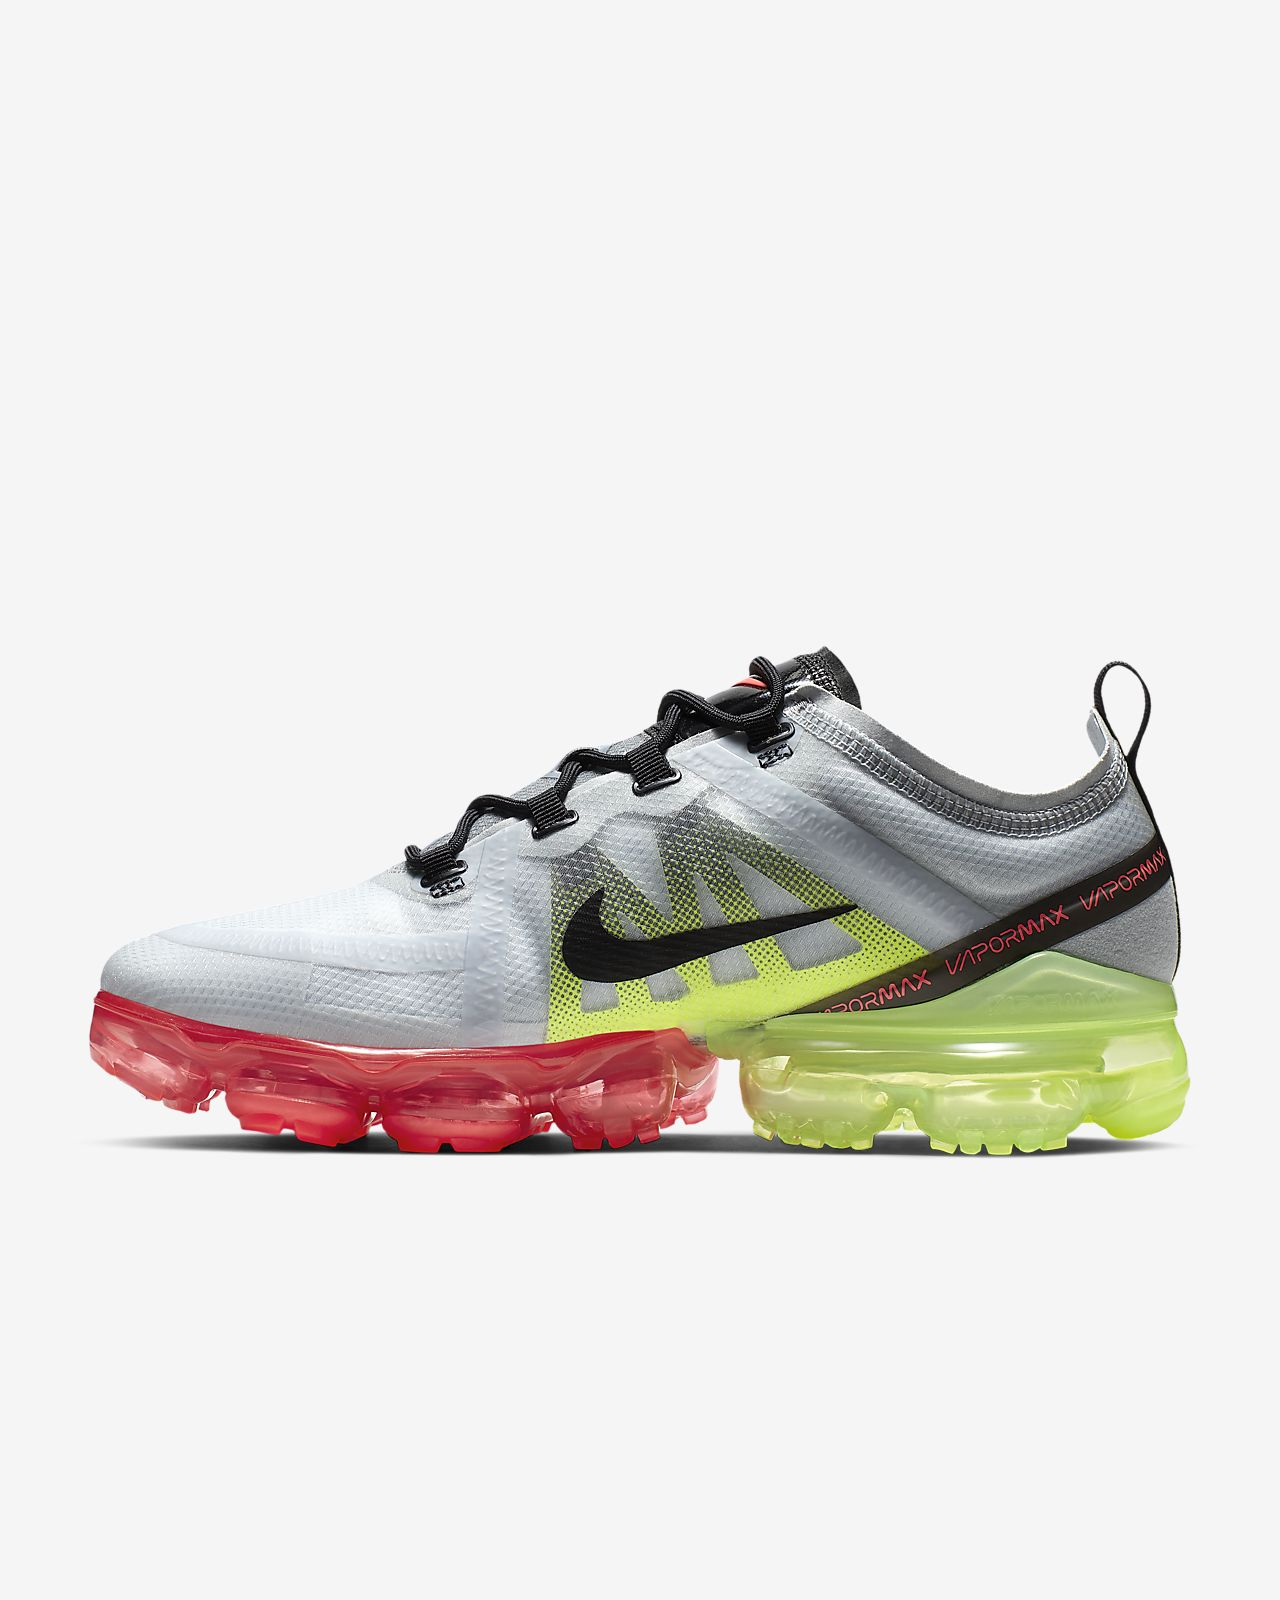 outlet store 2c984 42c26 ... Chaussure Nike Air VaporMax 2019